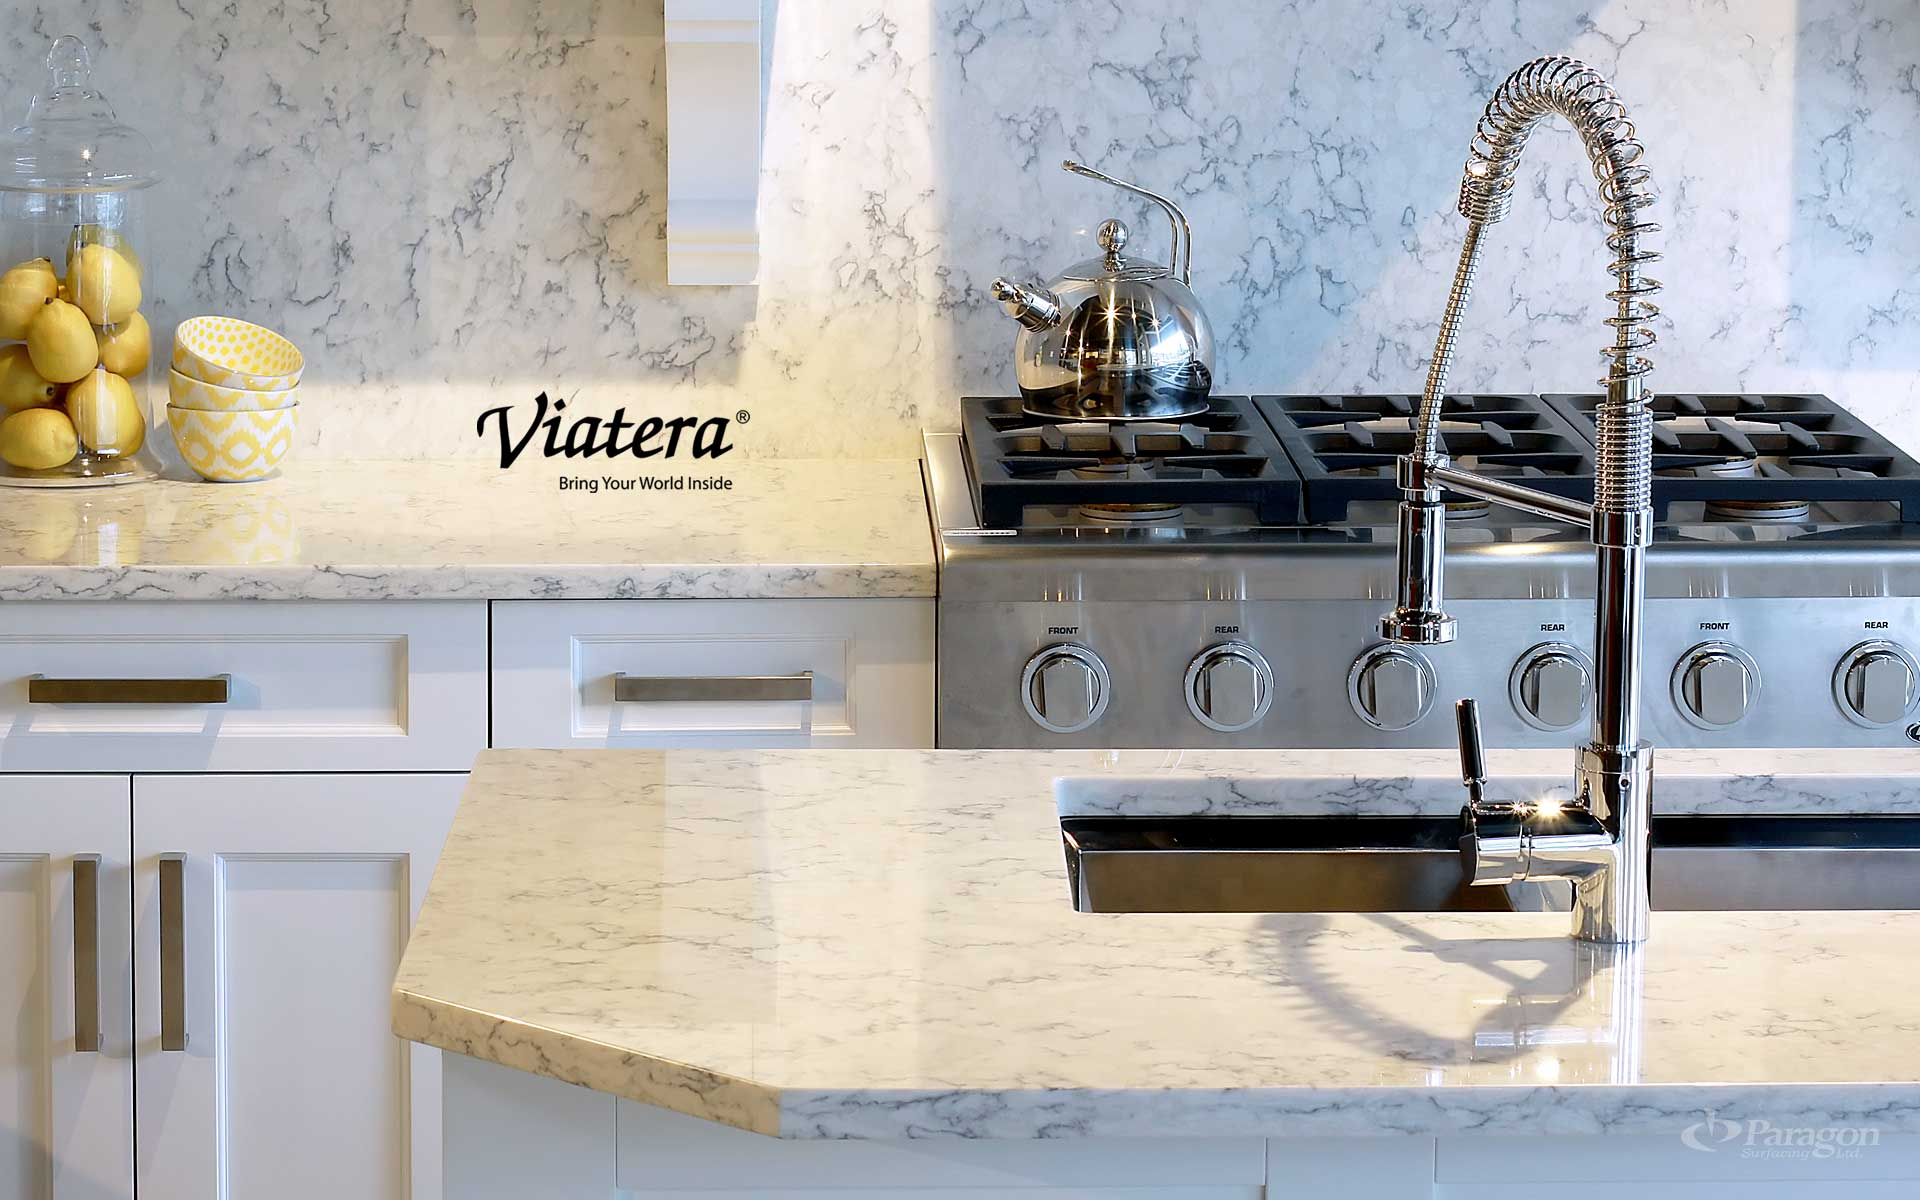 Home / Countertops / Viatera Quartz Countertops